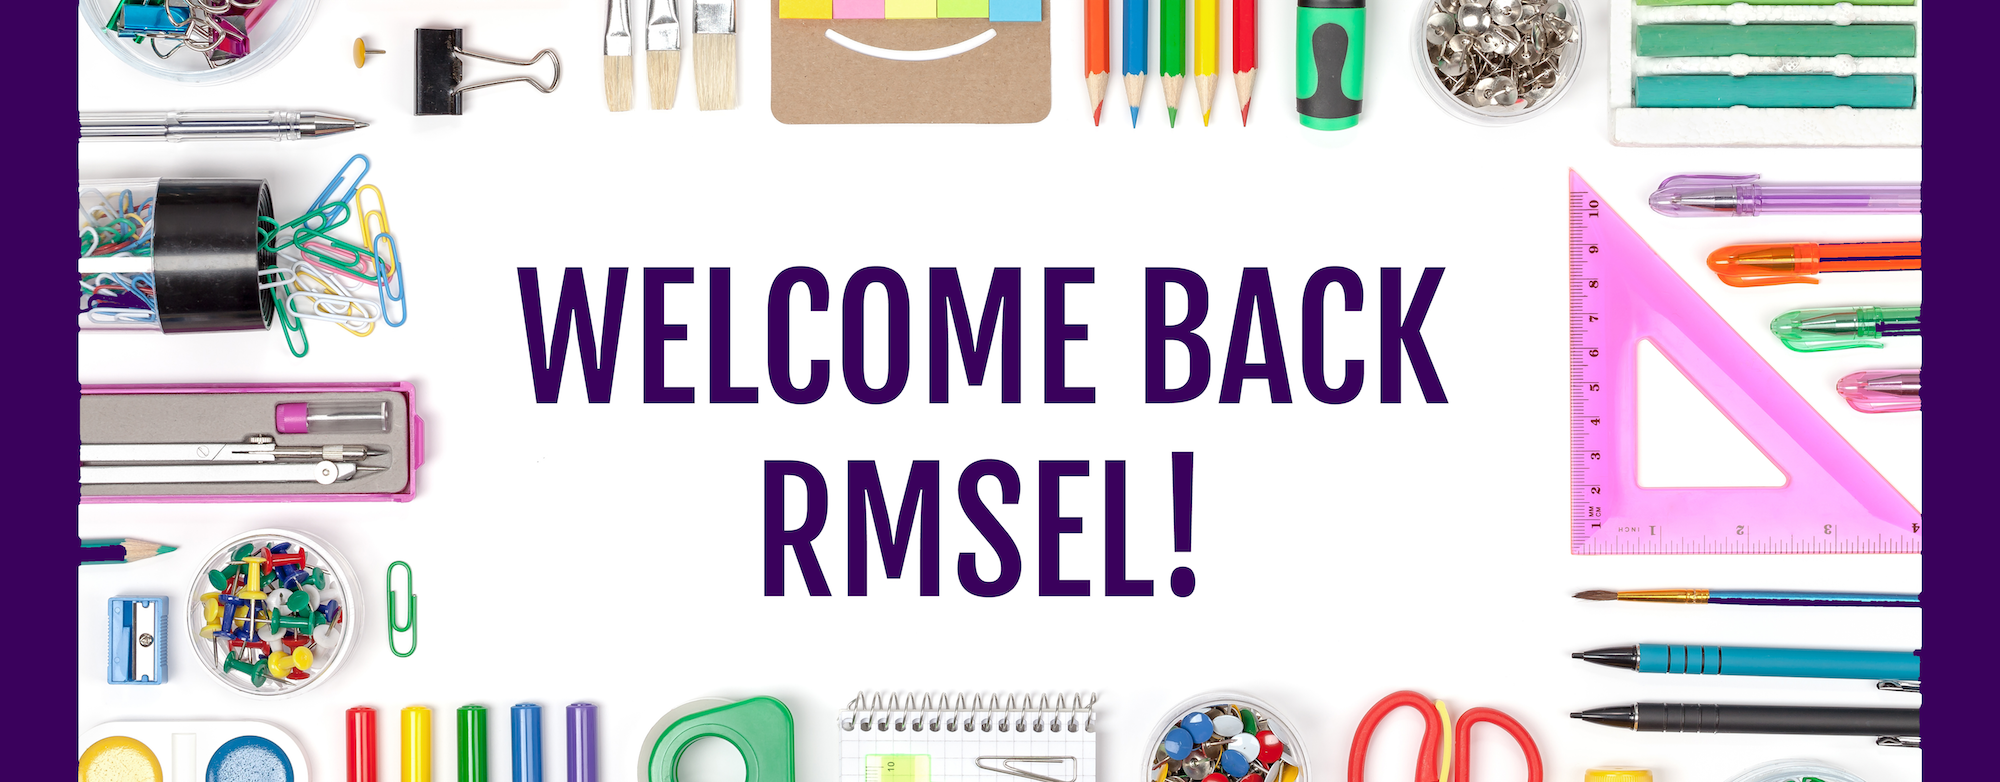 Welcome Back RMSEL